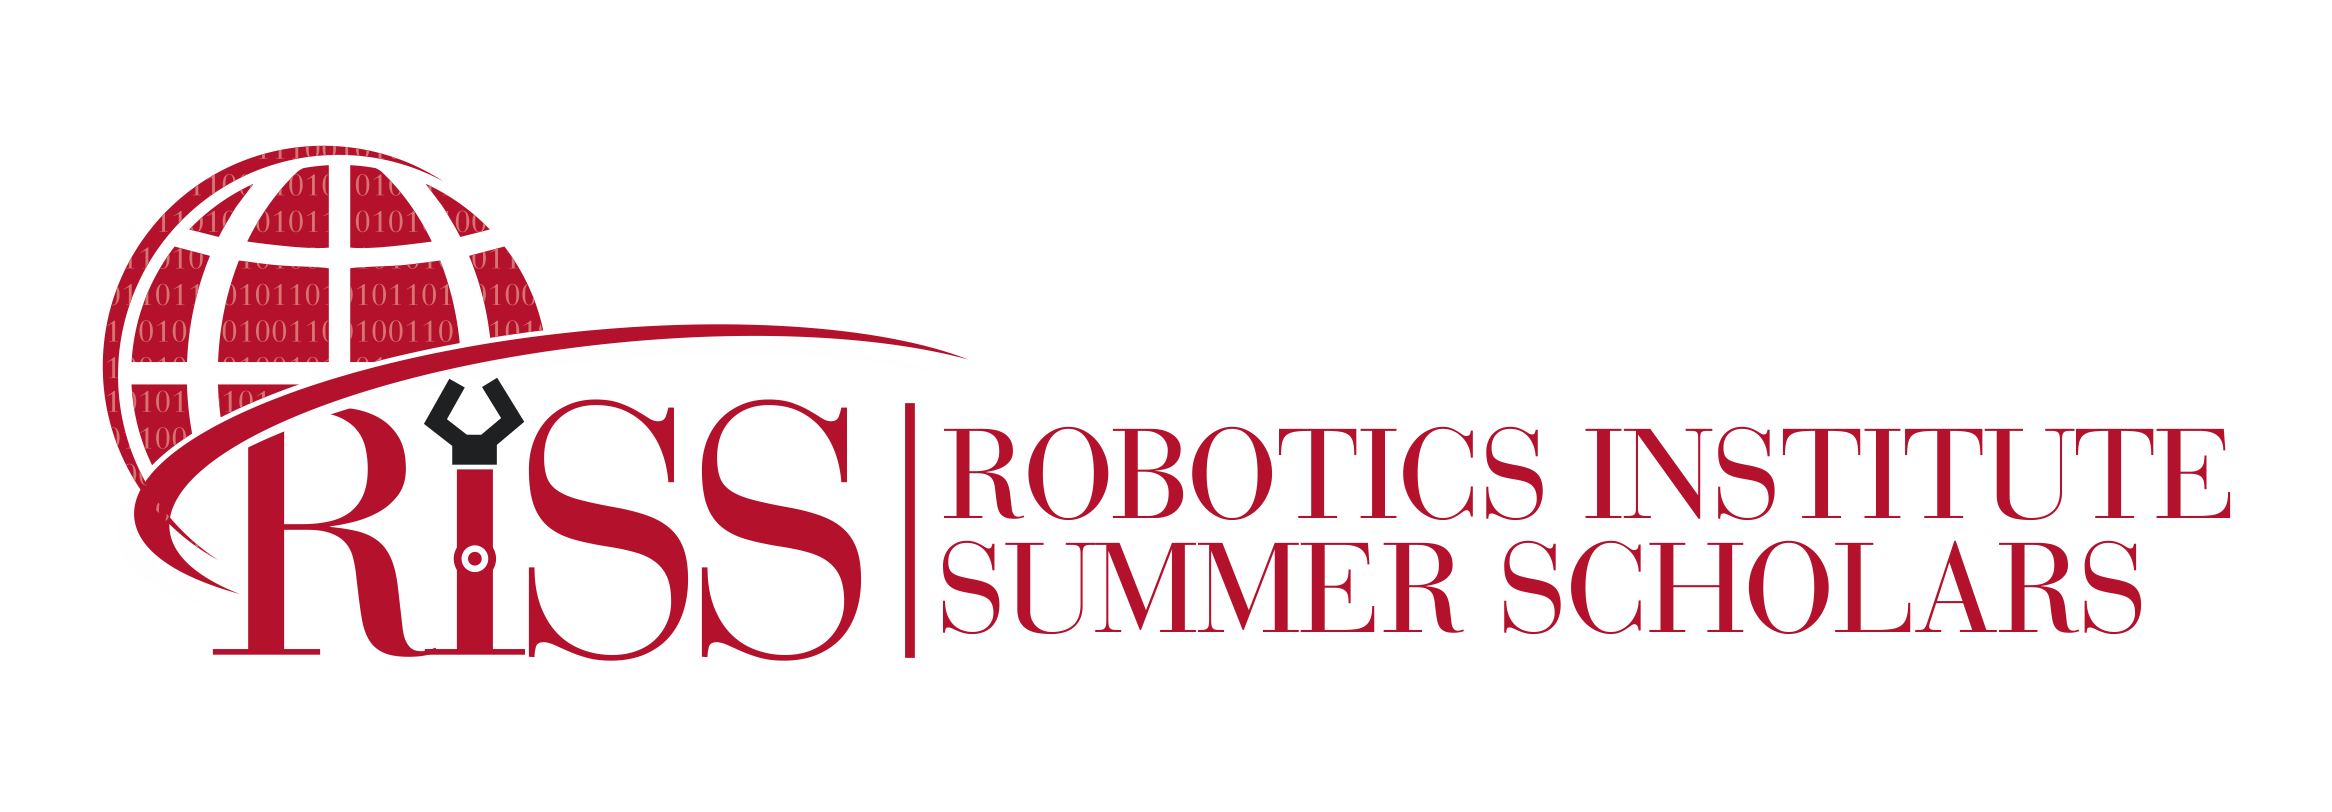 Robotics Institute Summer Scholars (RISS) Retina Logo